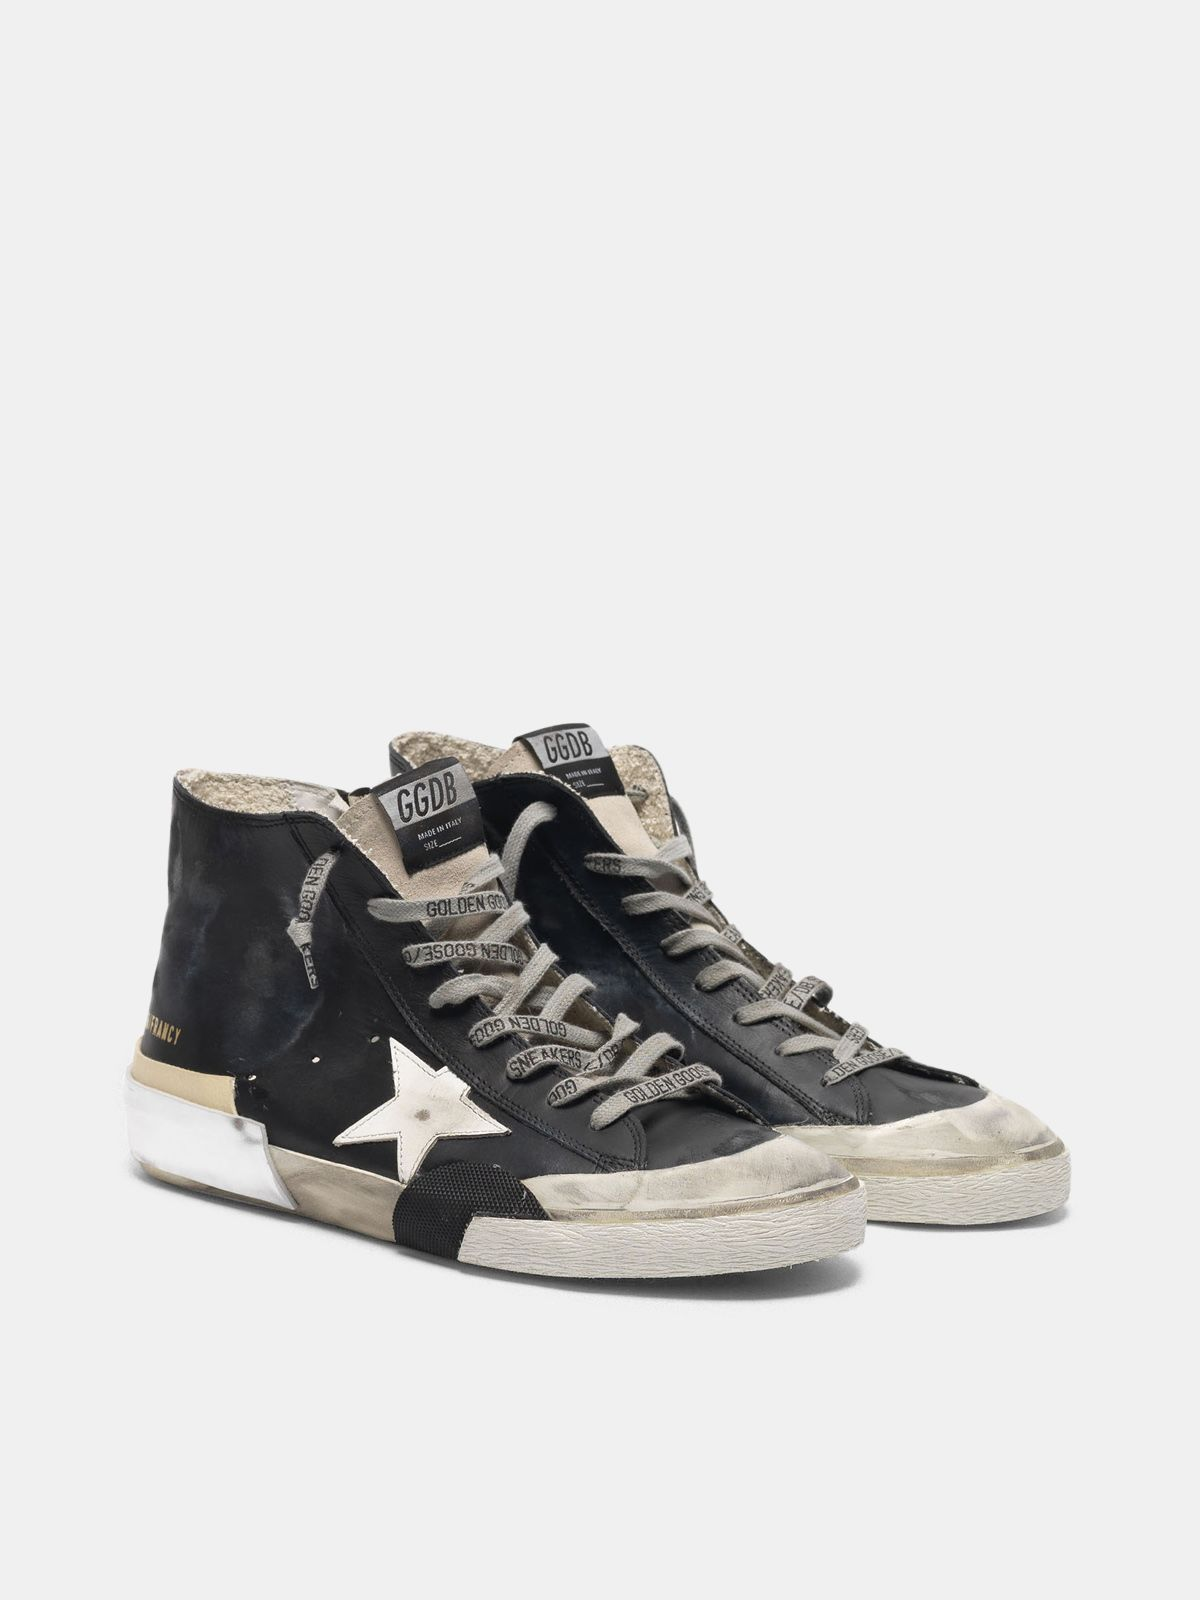 Golden Goose - Black patchwork Francy sneakers with multi-foxing in